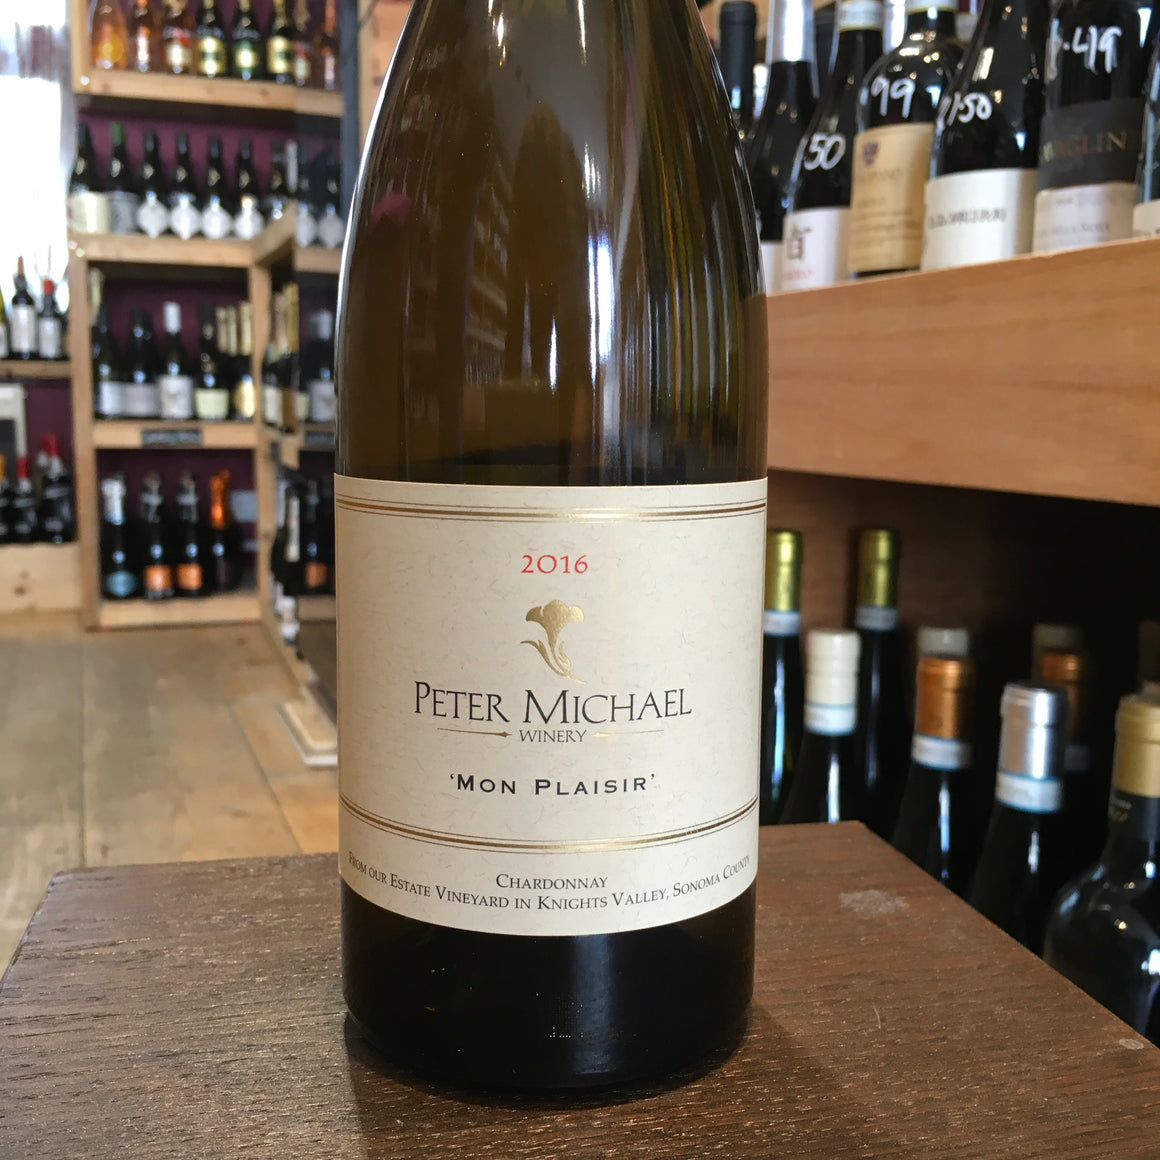 Peter Michael Mon Plaisir Chardonnay 2016 - Butlers Wine Cellar Brighton